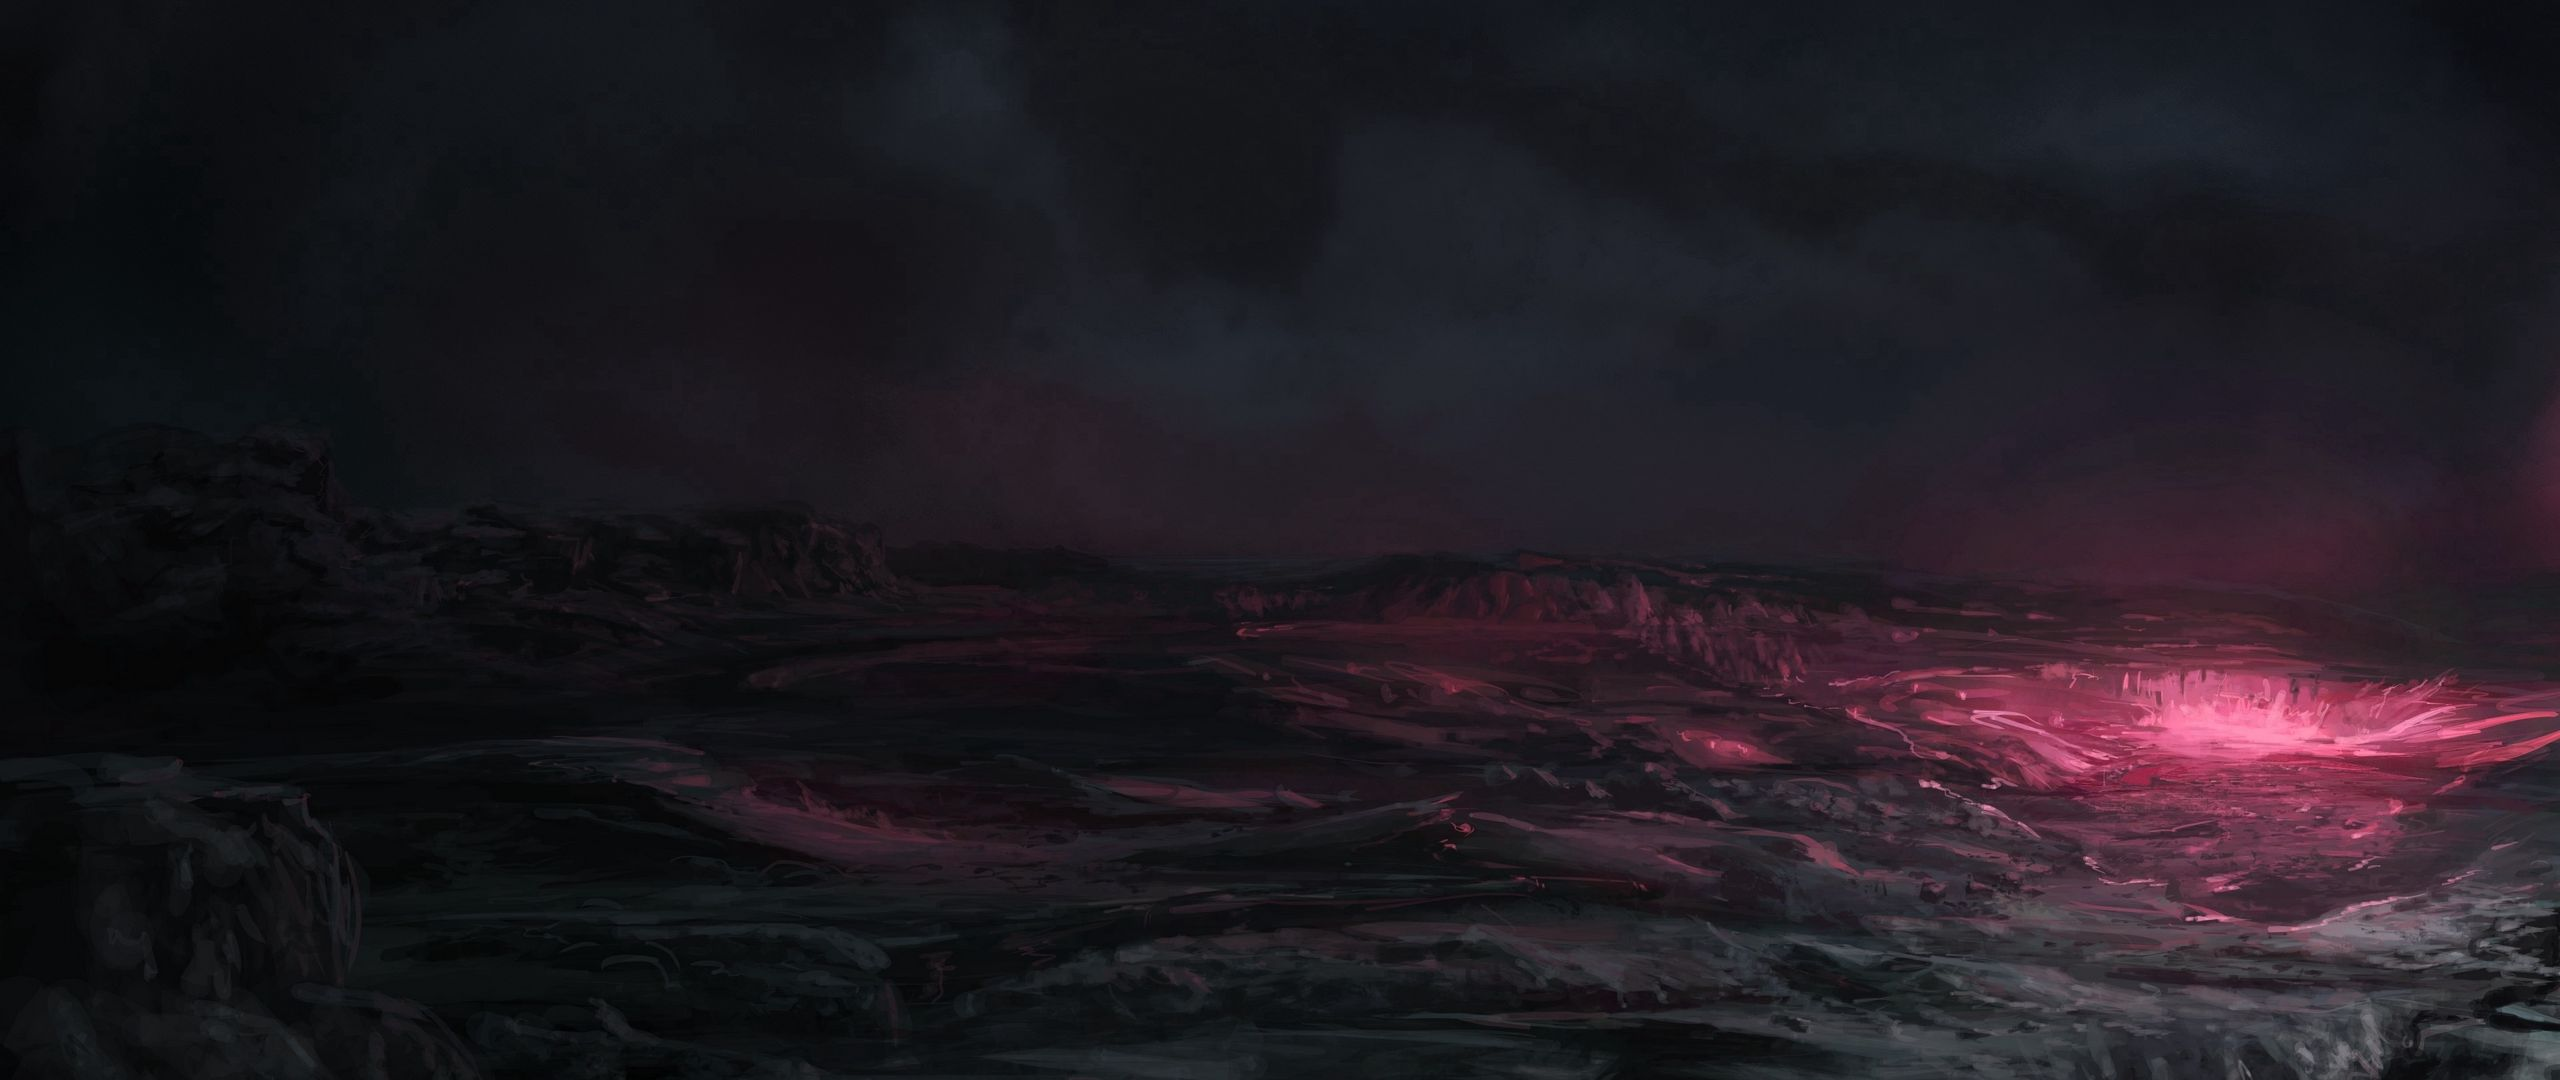 2560x1080 Wallpaper space, planet, surface, shadow